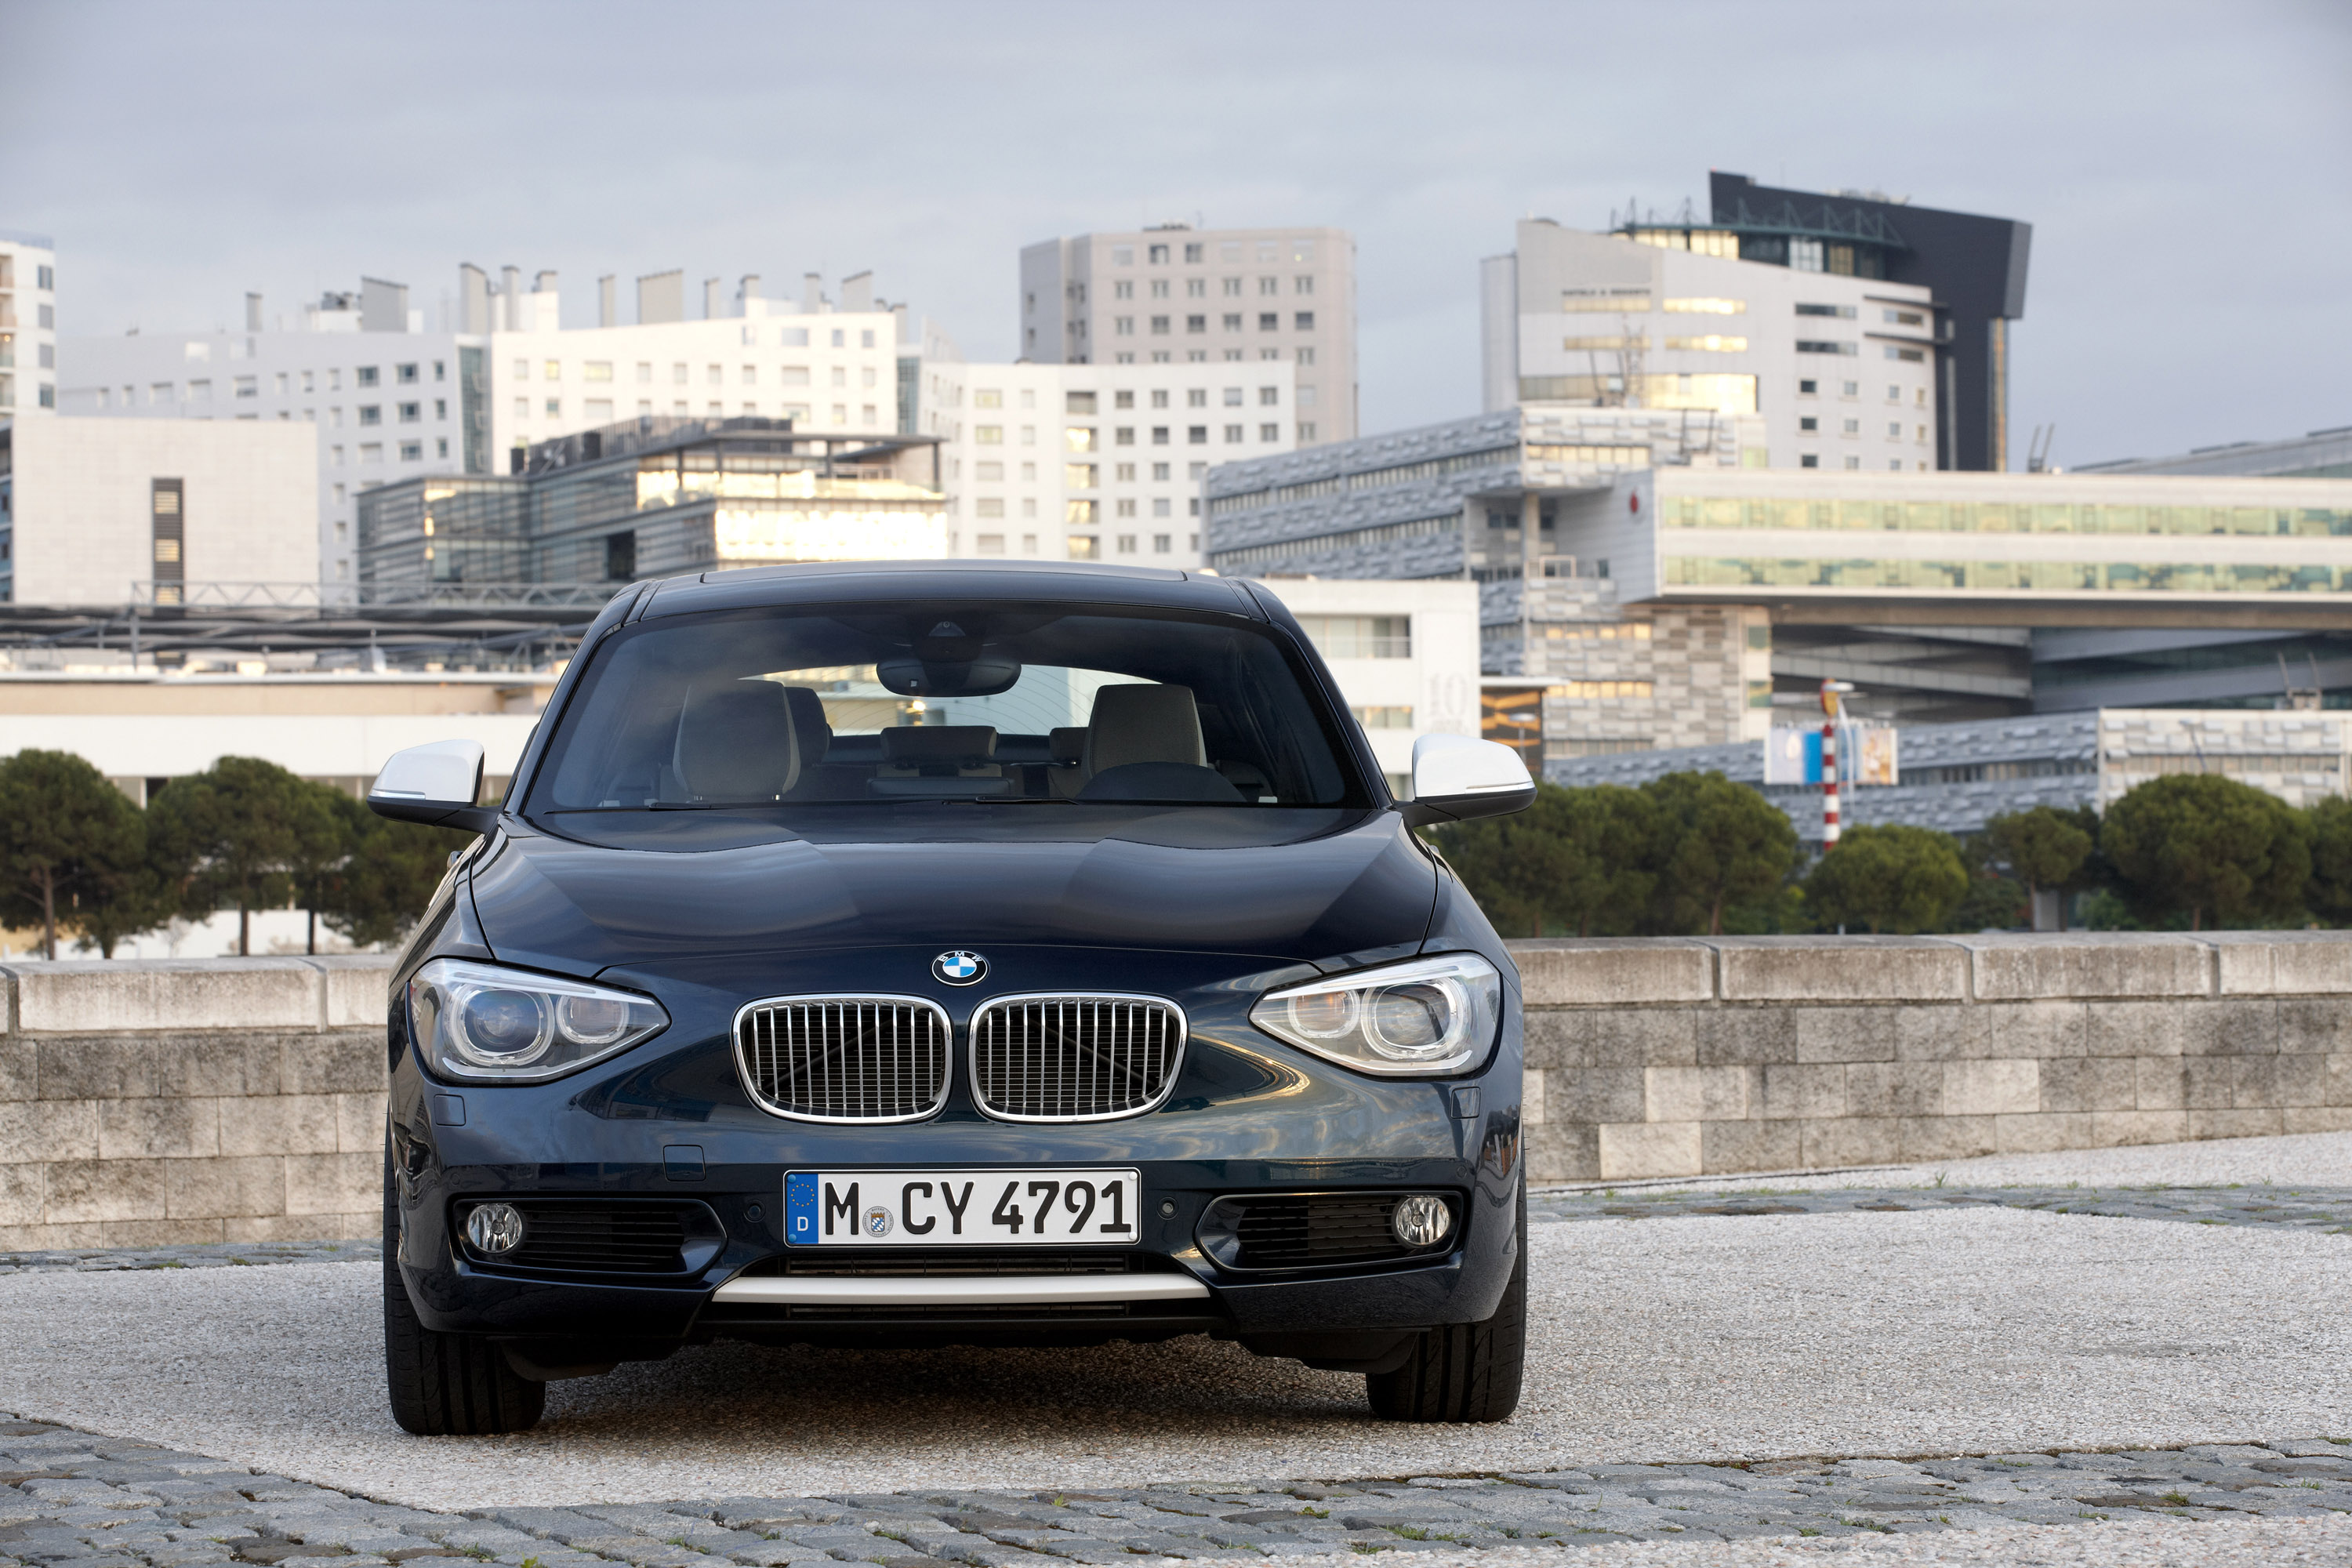 ac schnitzer 2012 bmw 3 series f30 video. Black Bedroom Furniture Sets. Home Design Ideas